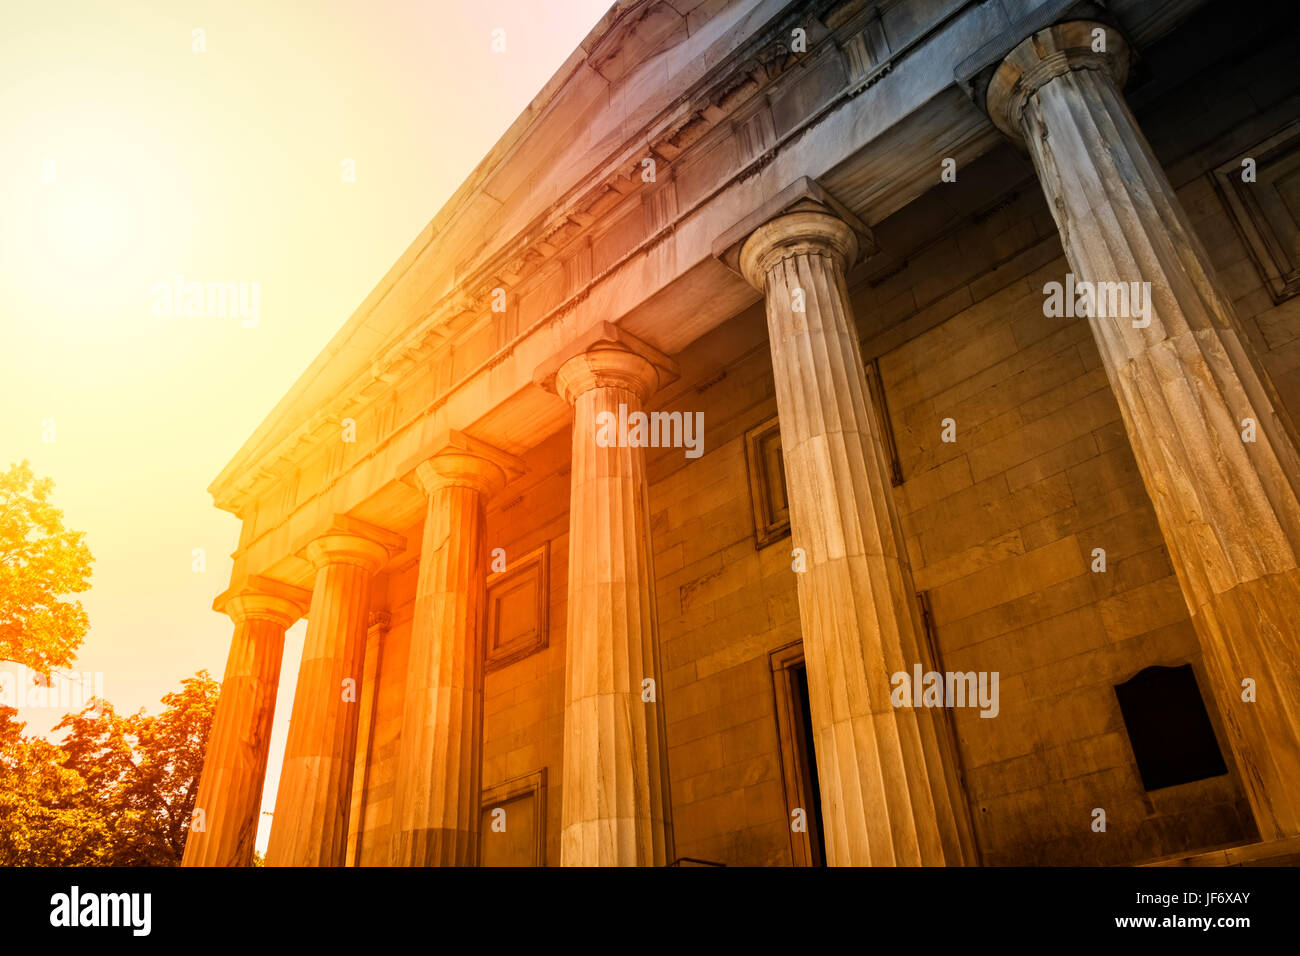 First Bank of the United States - Philadelphia, Pennsylvania, USA - Stock Image